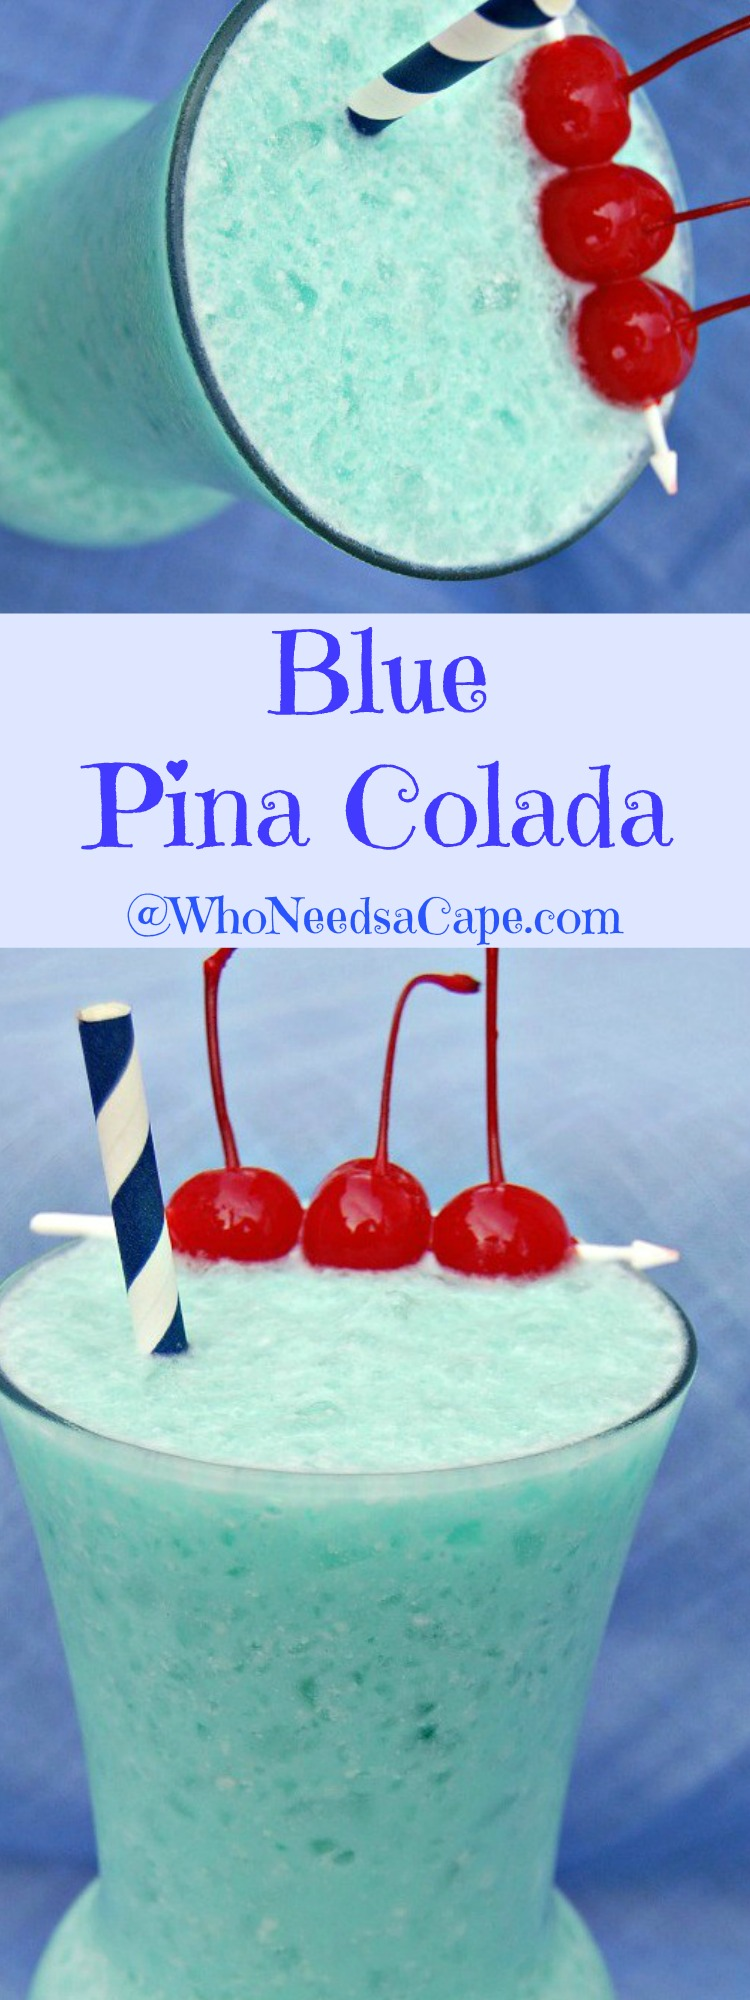 Blue Pina Colada is a great twist on the classic cocktail! Colorful and pretty AND tasty